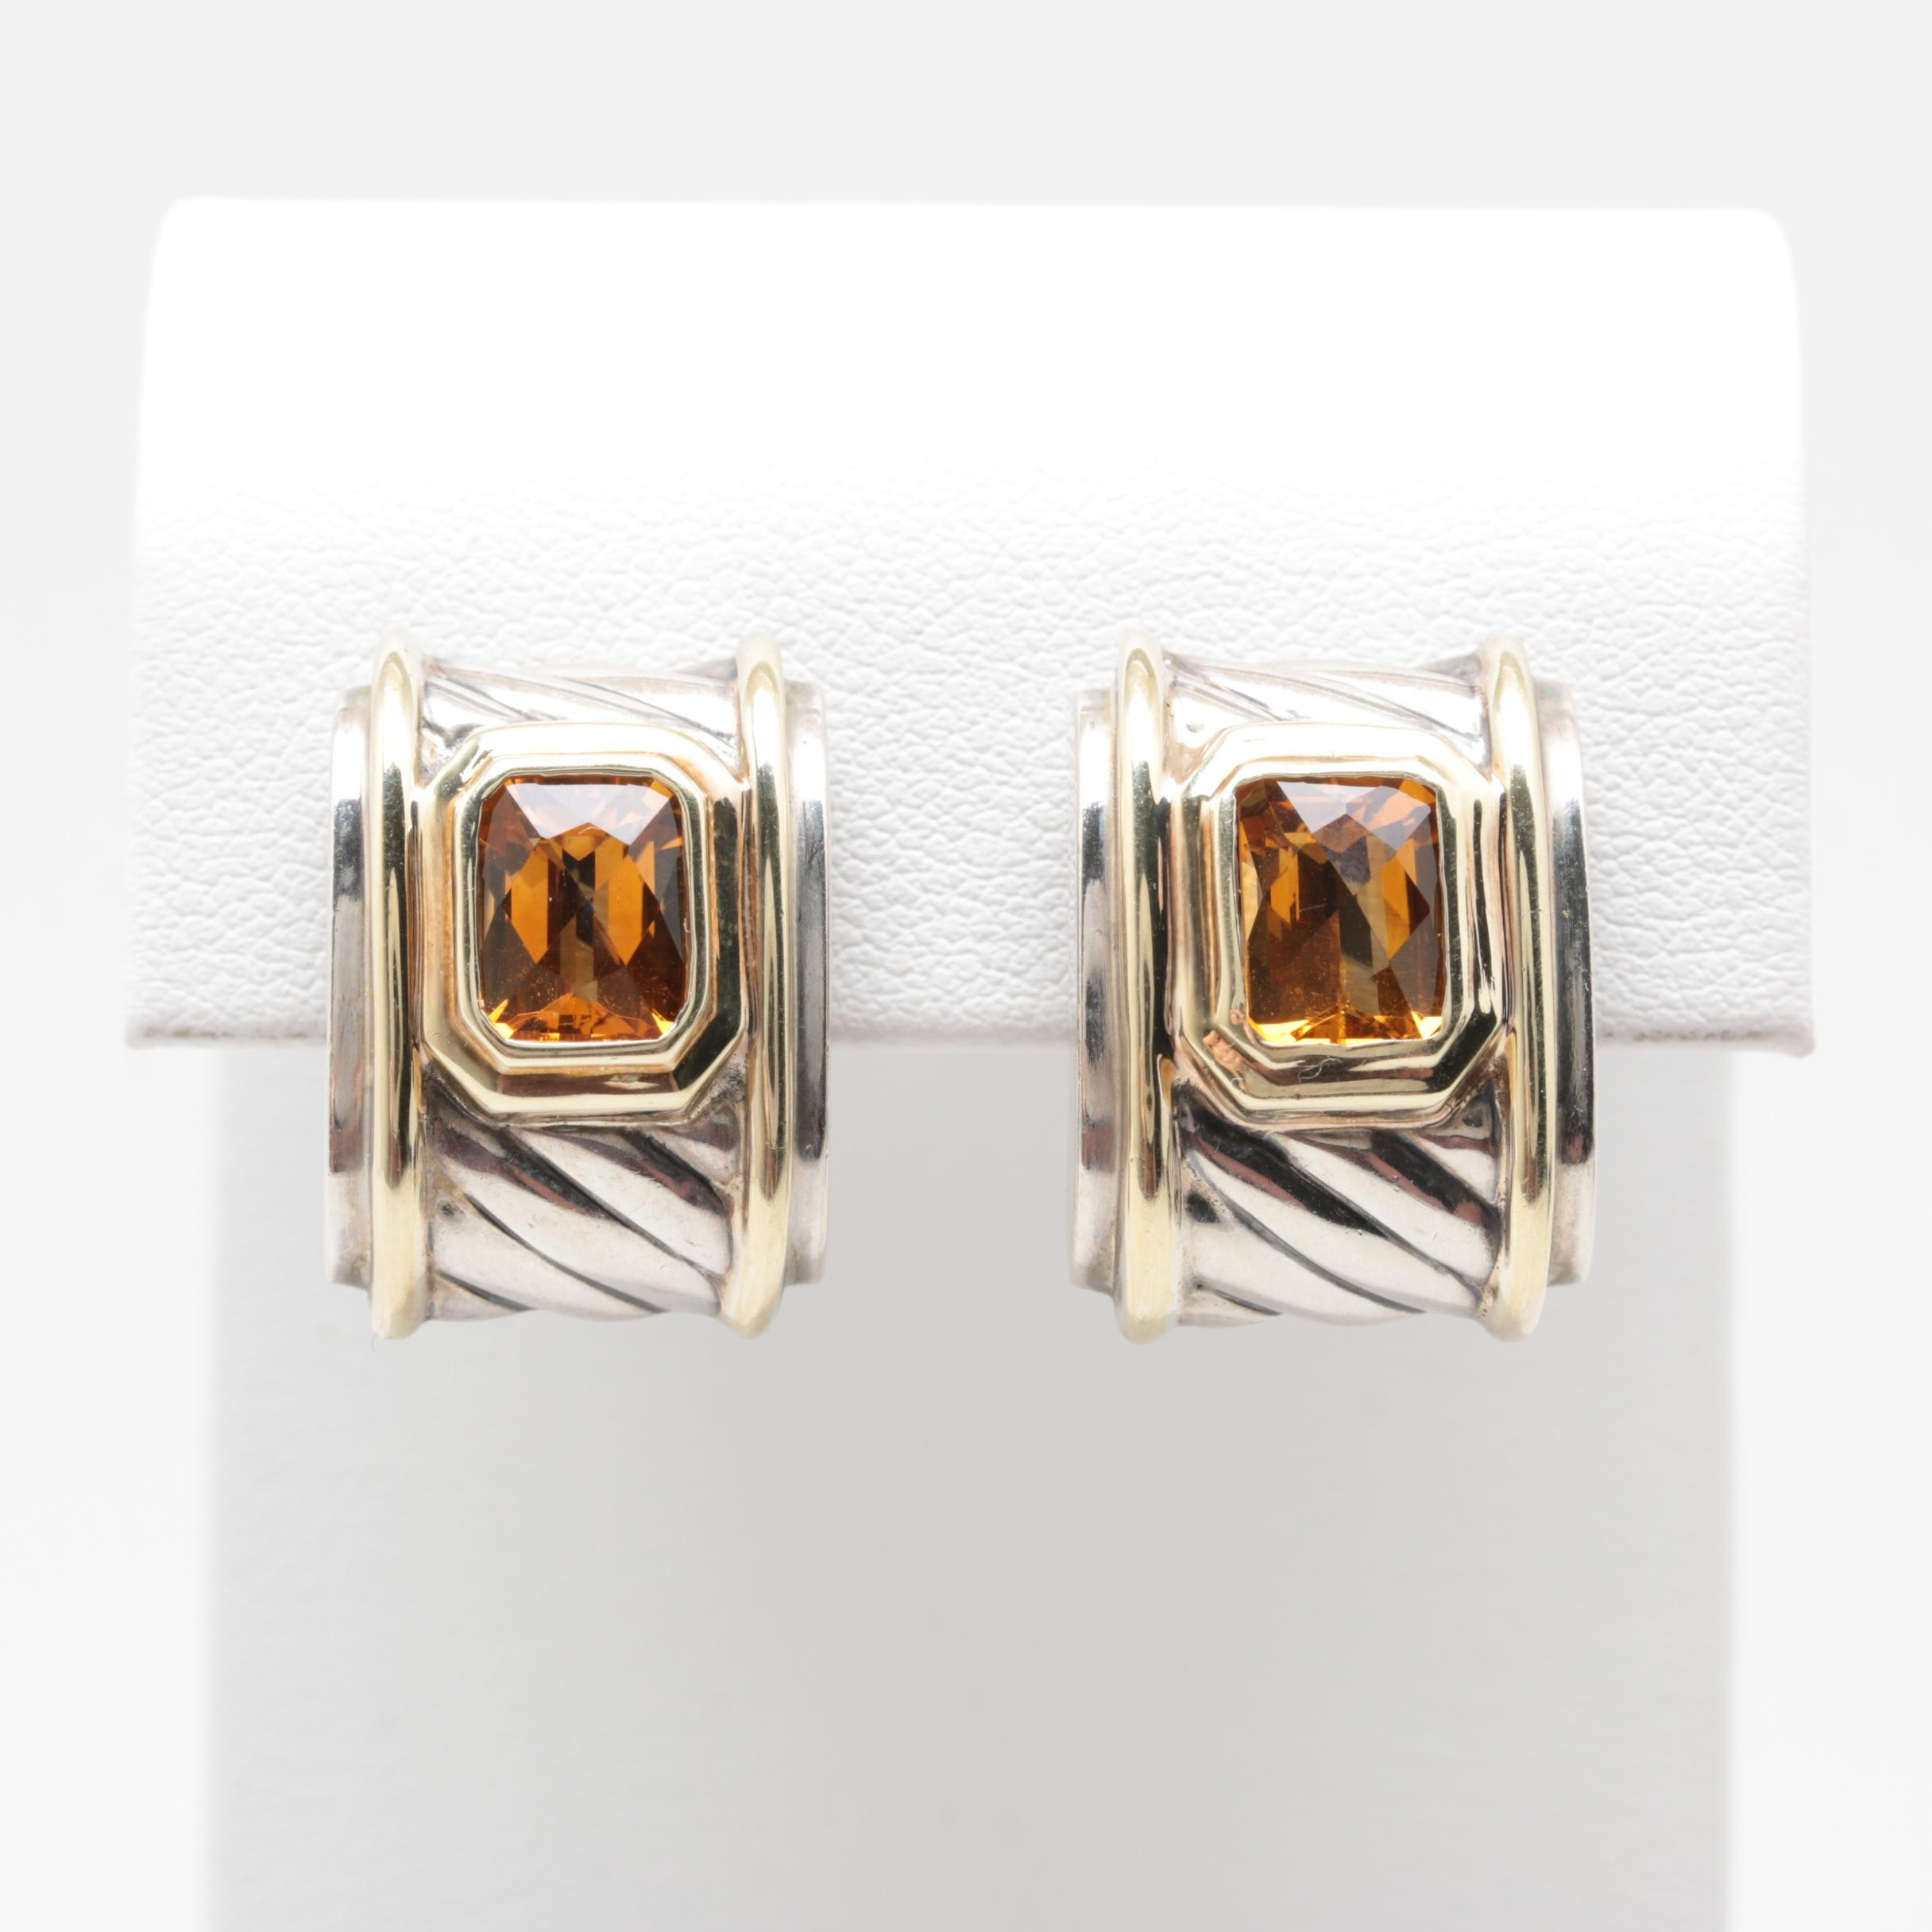 David Yurman Sterling Silver Citrine Earrings with 14K Yellow Gold Accents